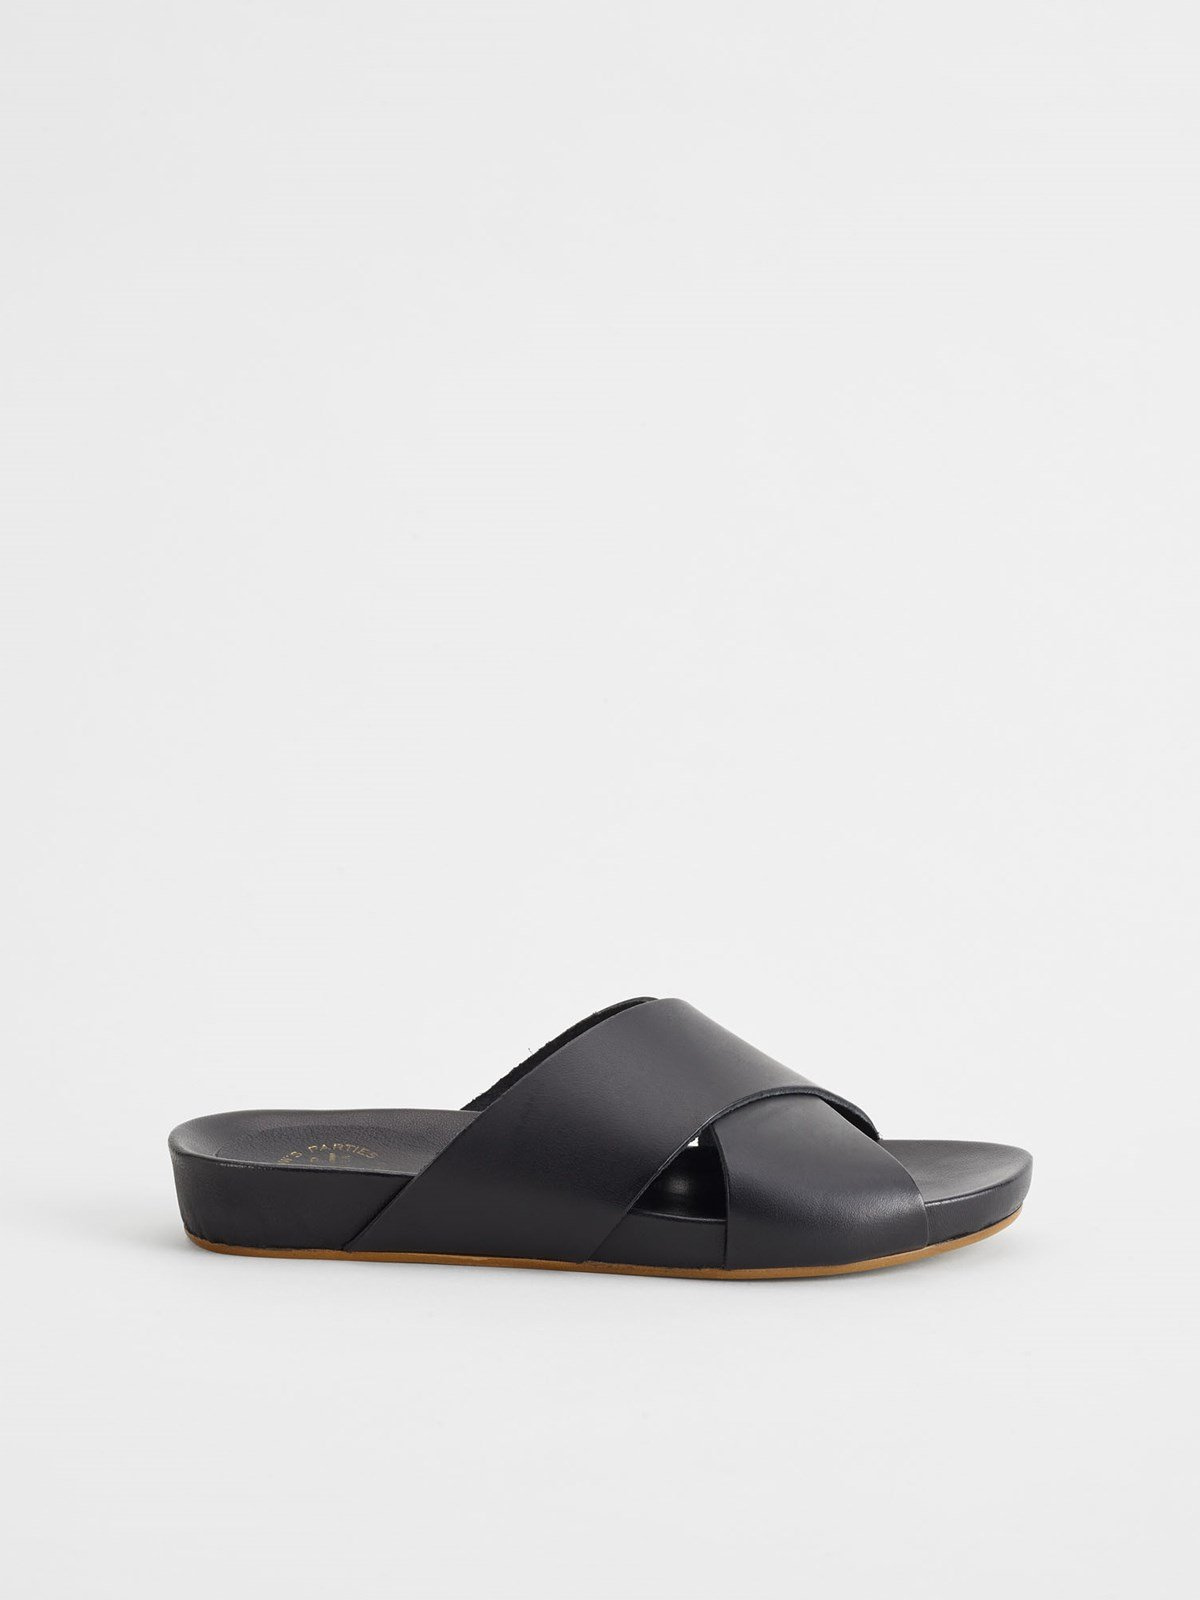 Doris Black Everyday sandals